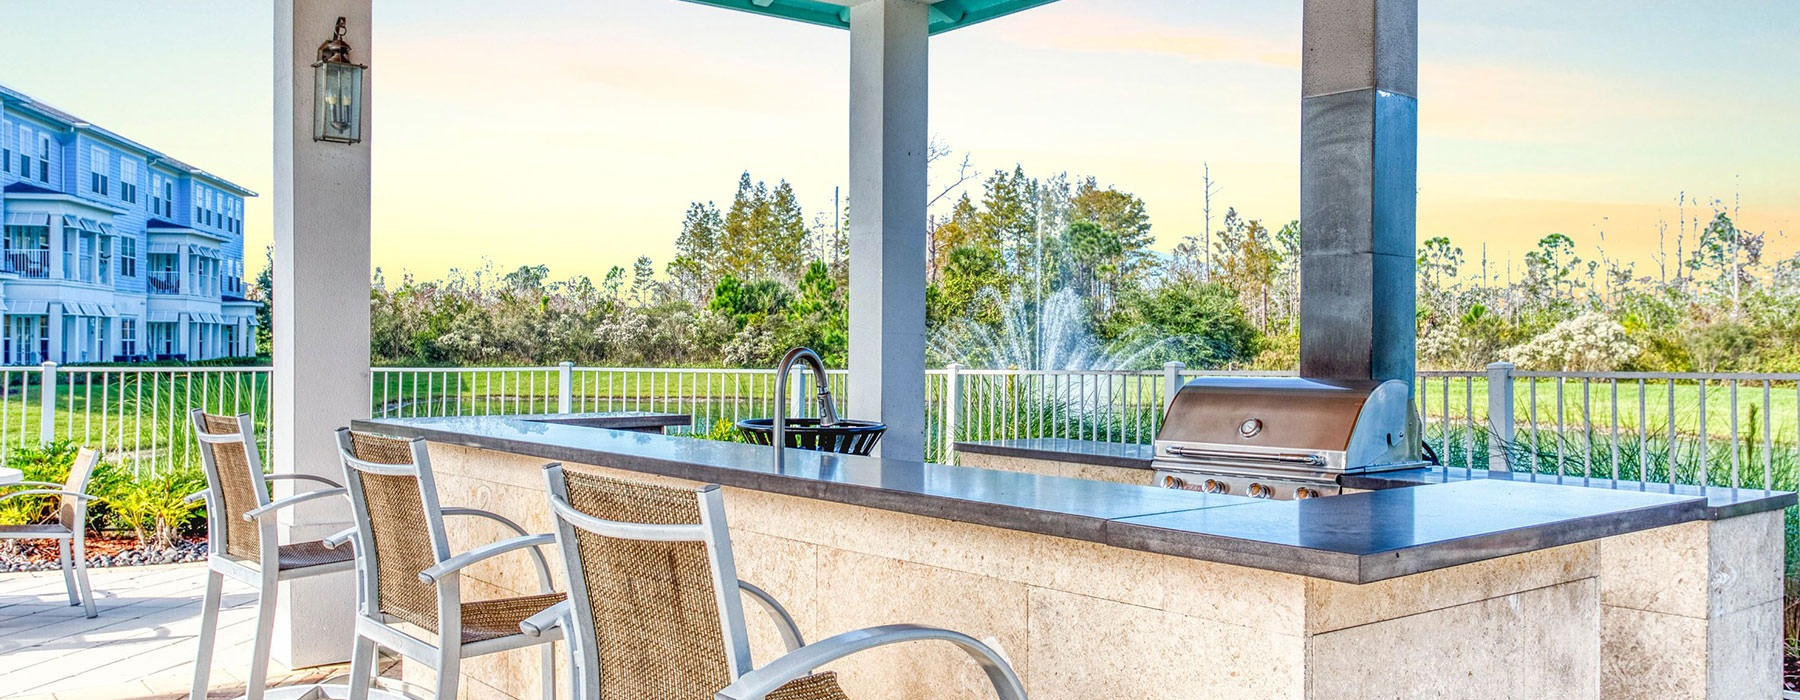 grill area and bar seating in large open outdoor space